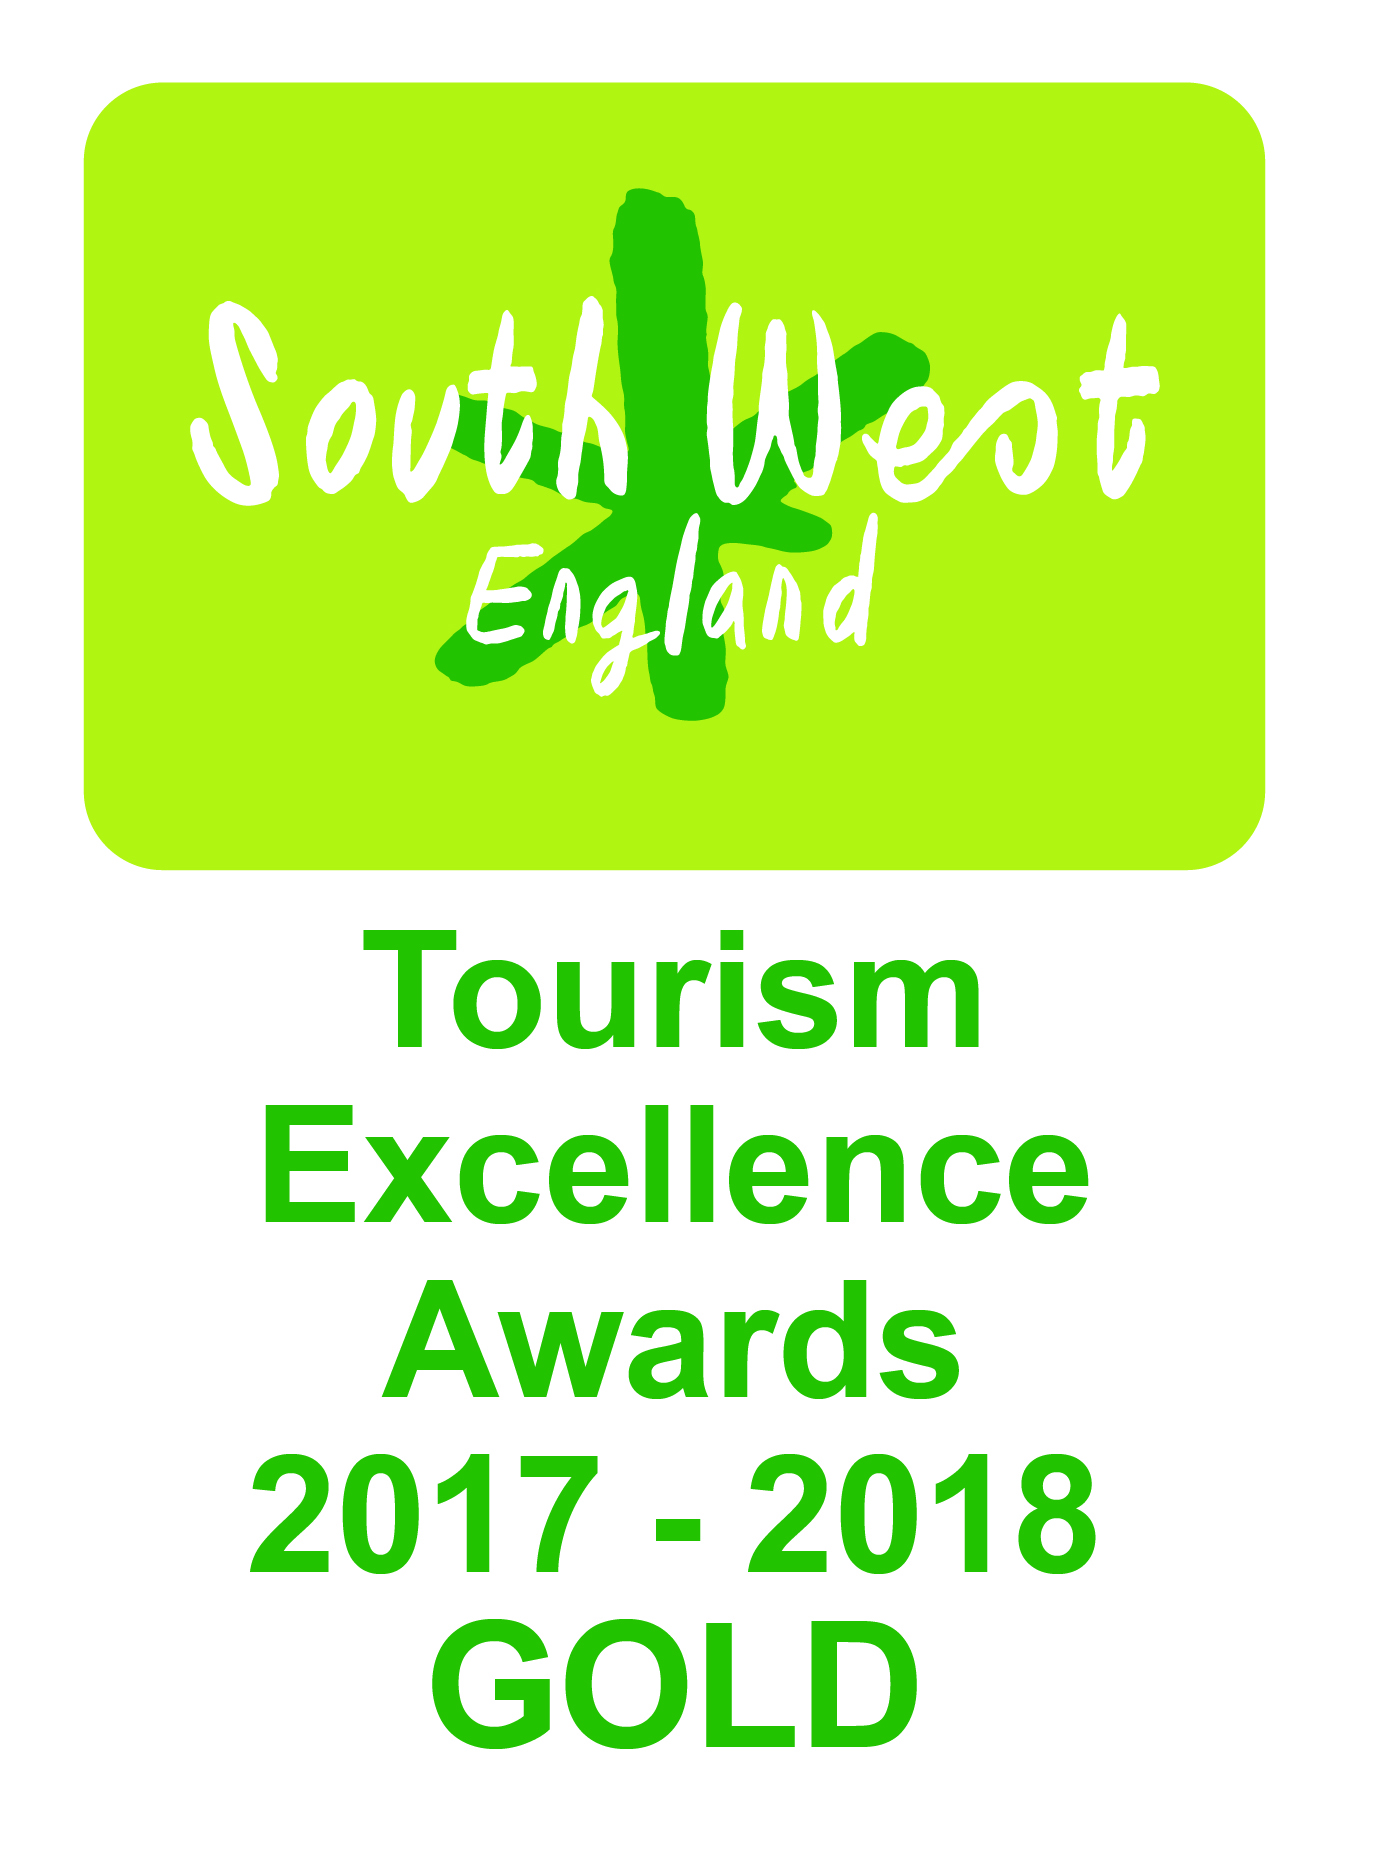 South West Tourism Awards Gold Festival of the Year